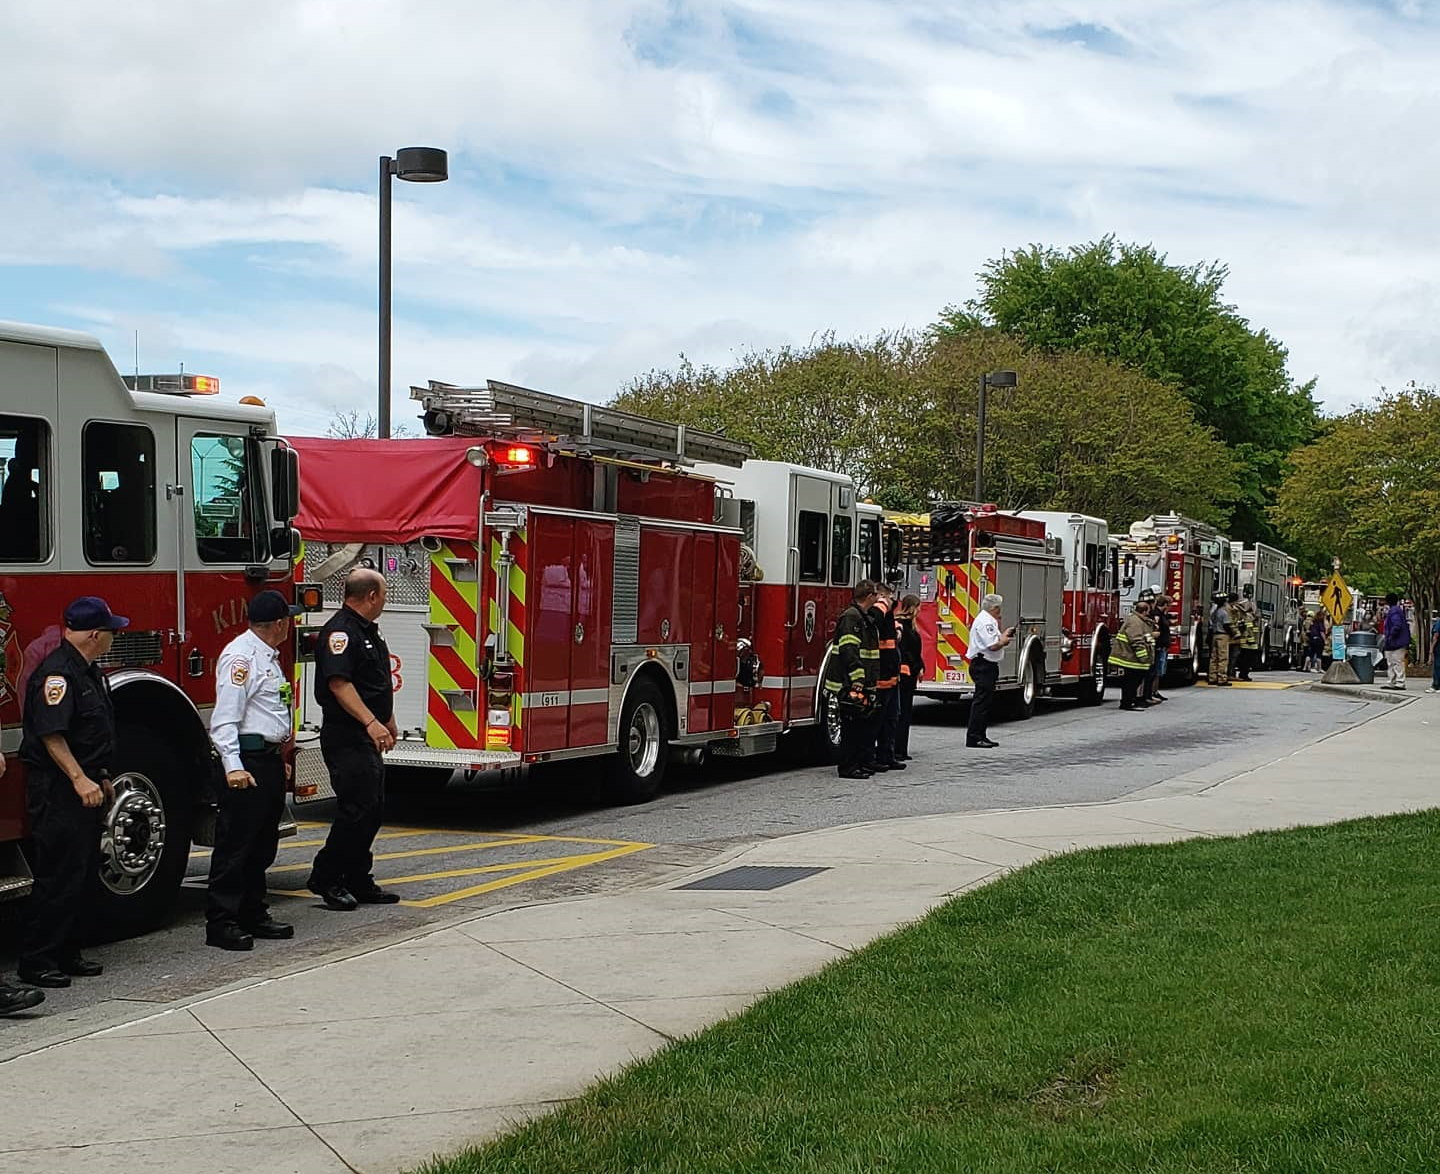 Firemen with their firetrucks cheering on healthcare workers